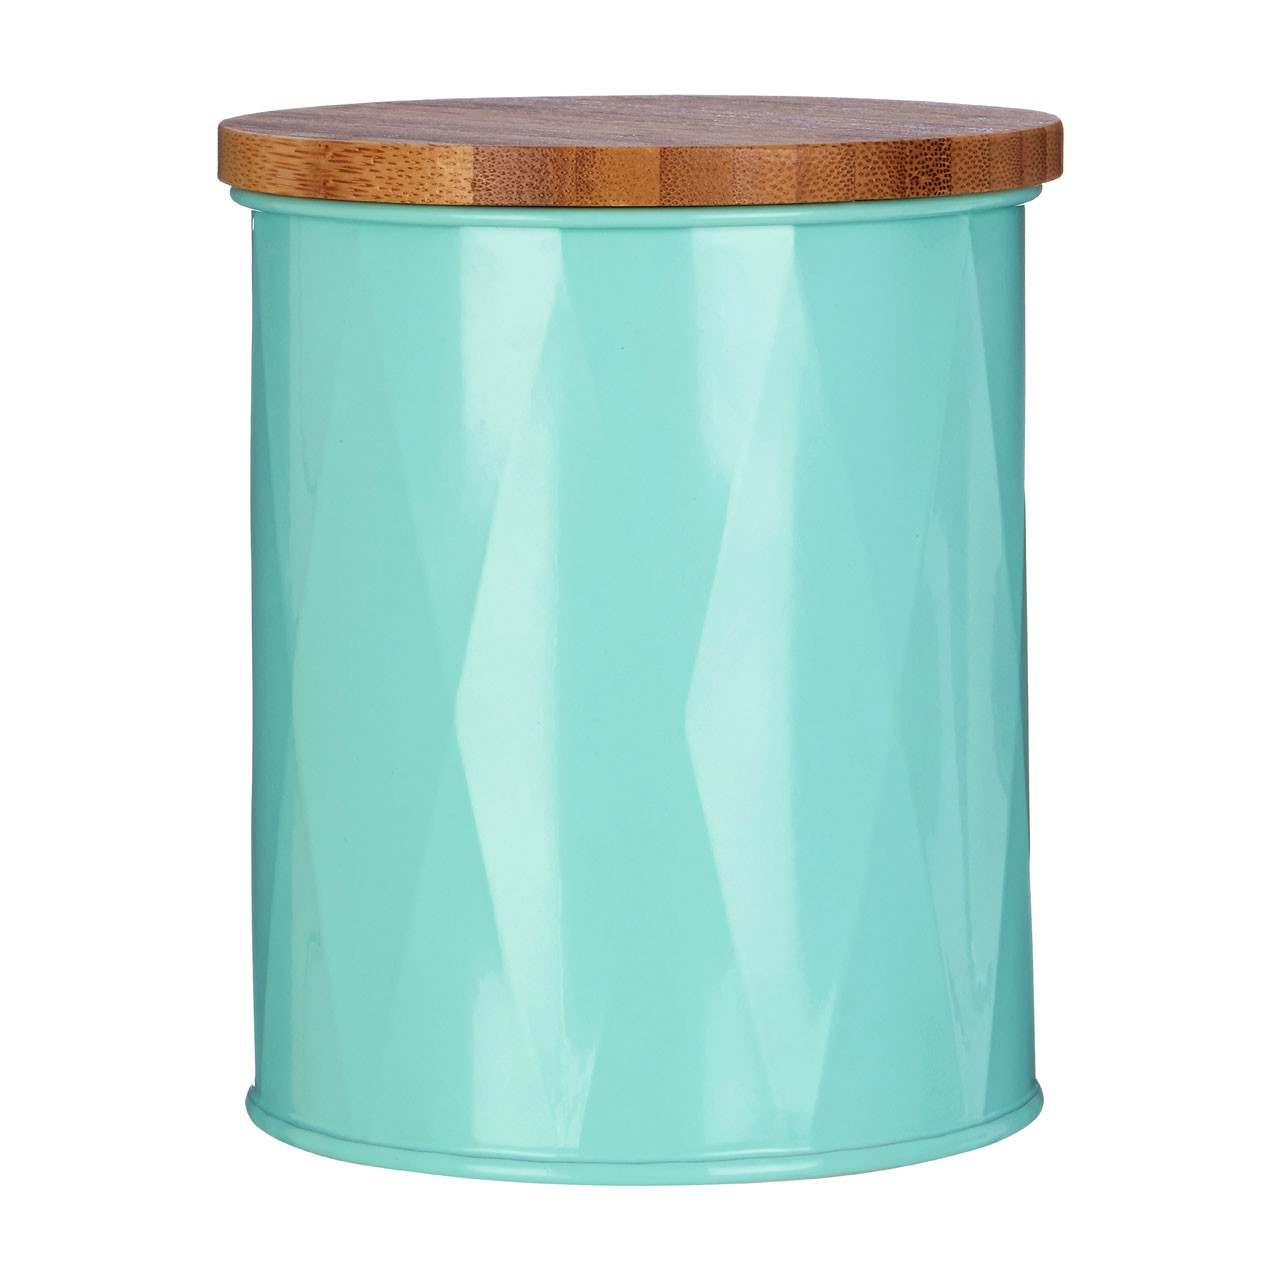 Prime Furnishing Rhombus Round Canister - Green - Set Of 3